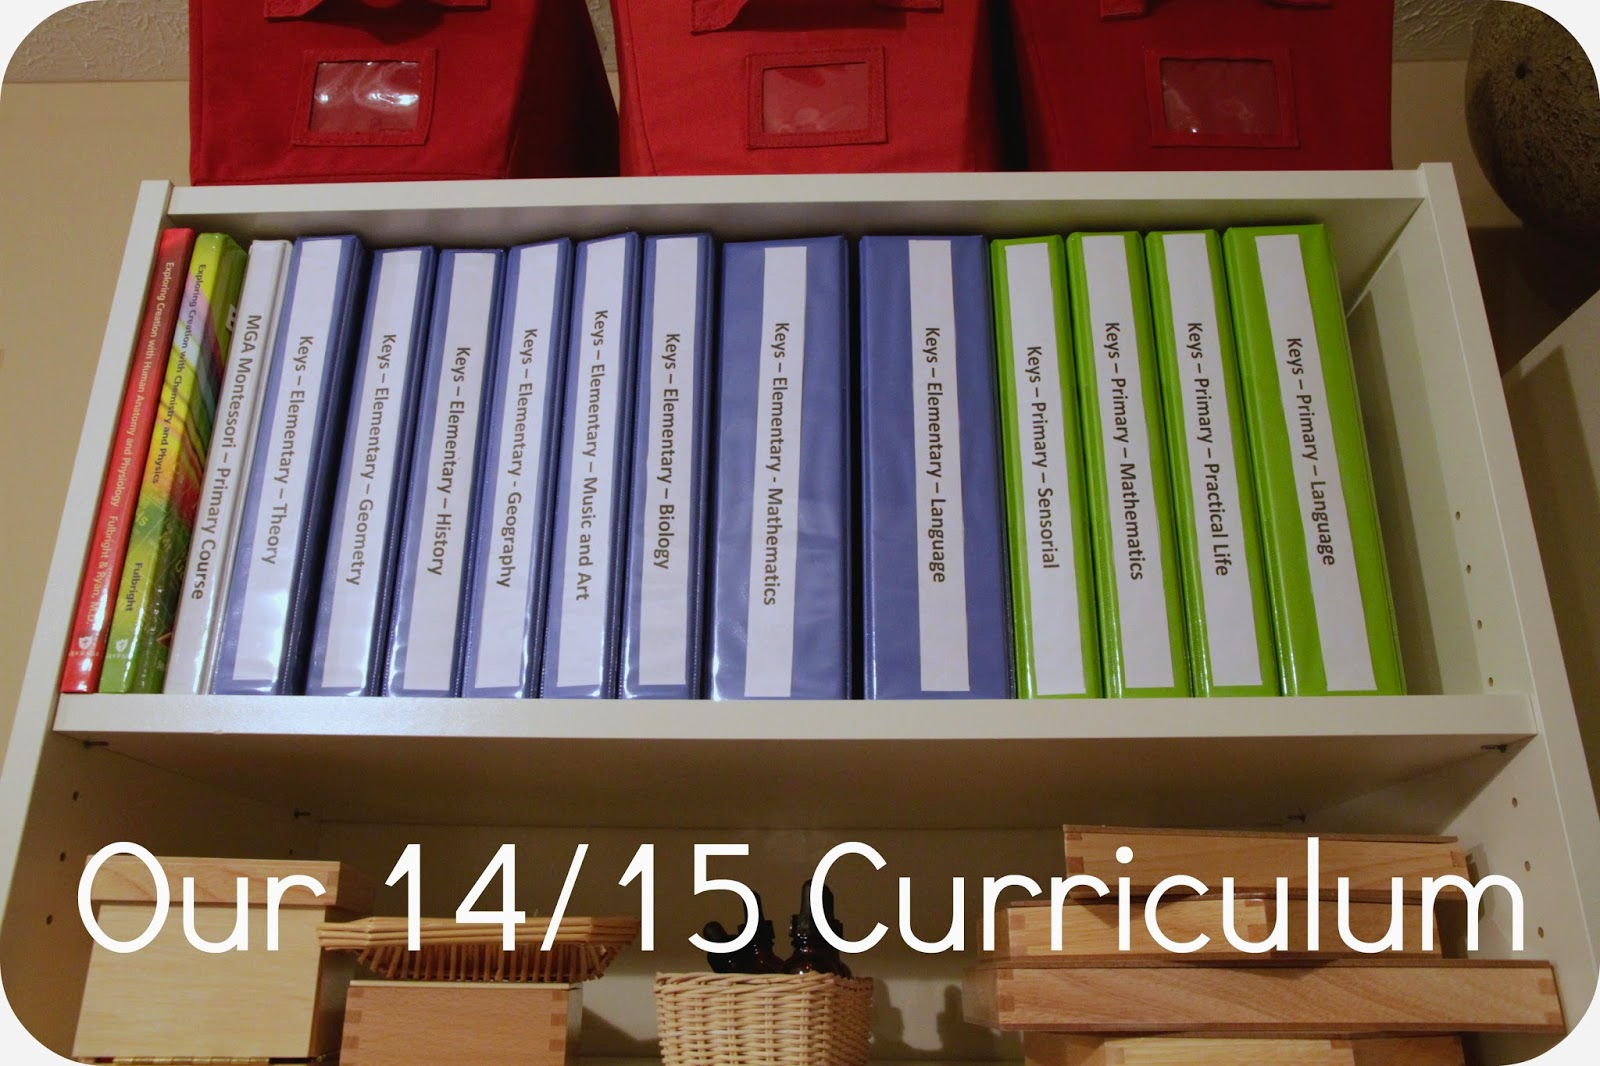 The Overdue 14/15 Curriculum Post